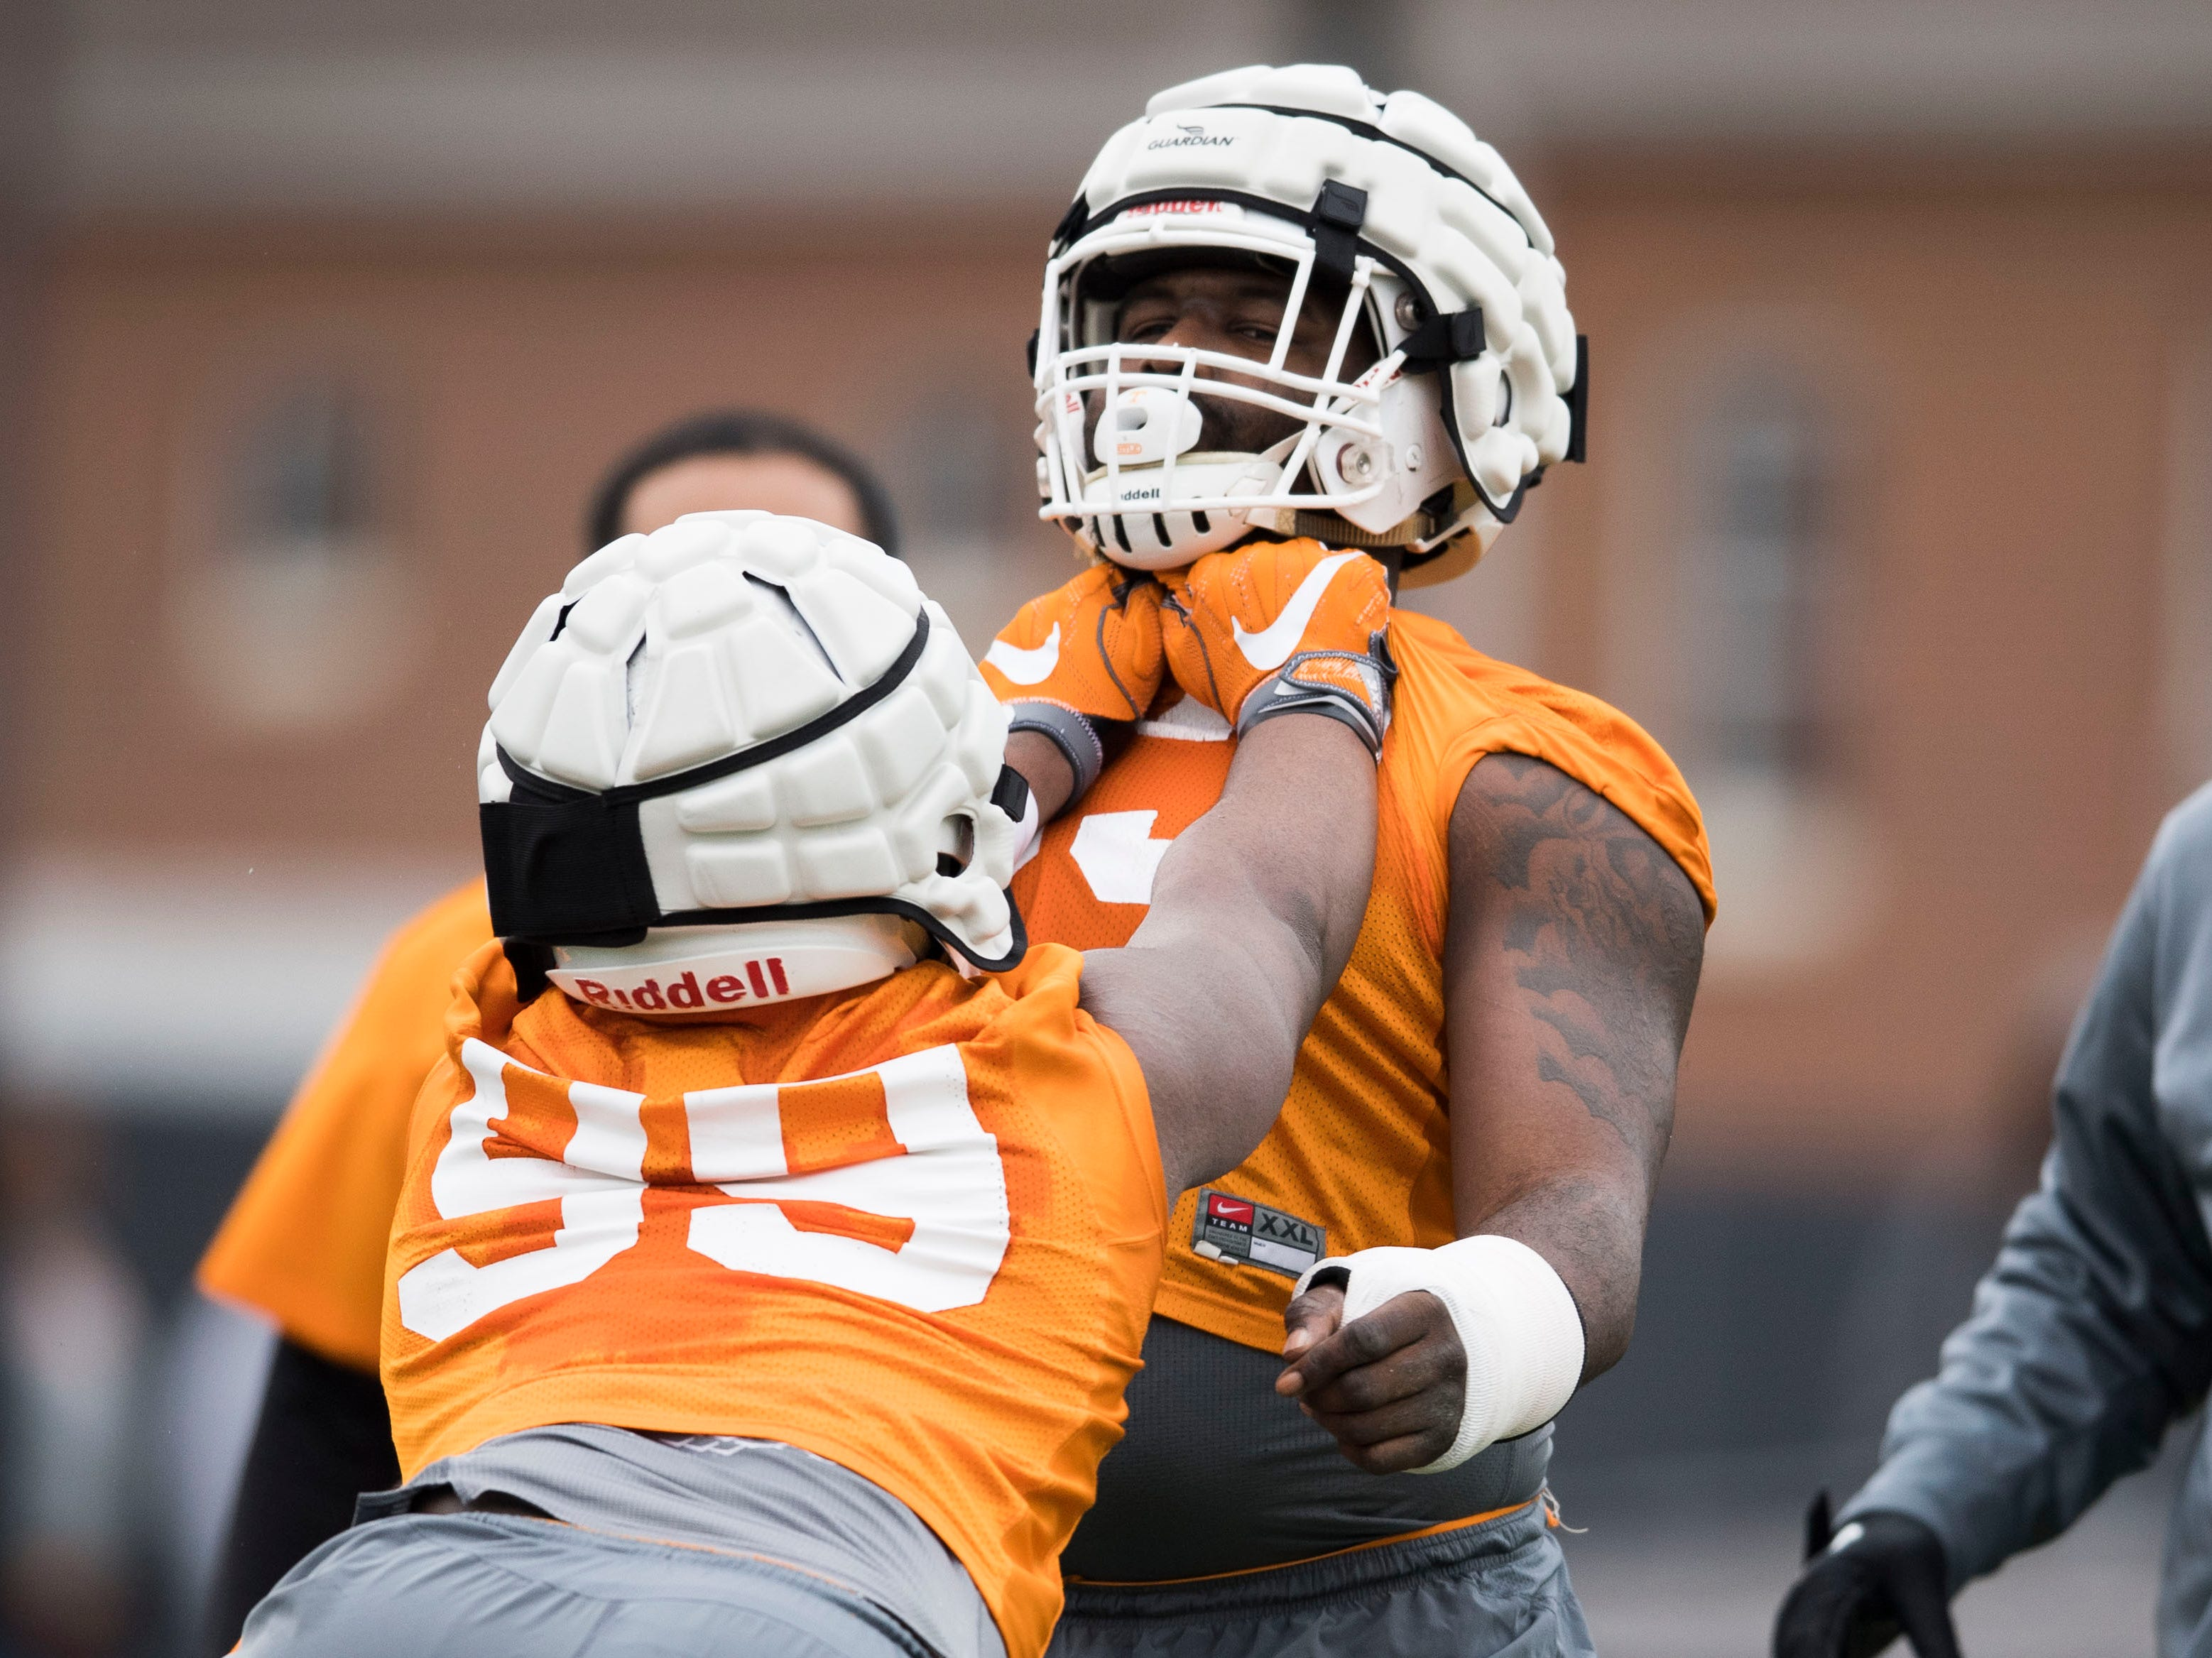 Players participate in a drill during Tennessee football's first practice of the spring season at University of Tennessee Thursday, March 7, 2019.